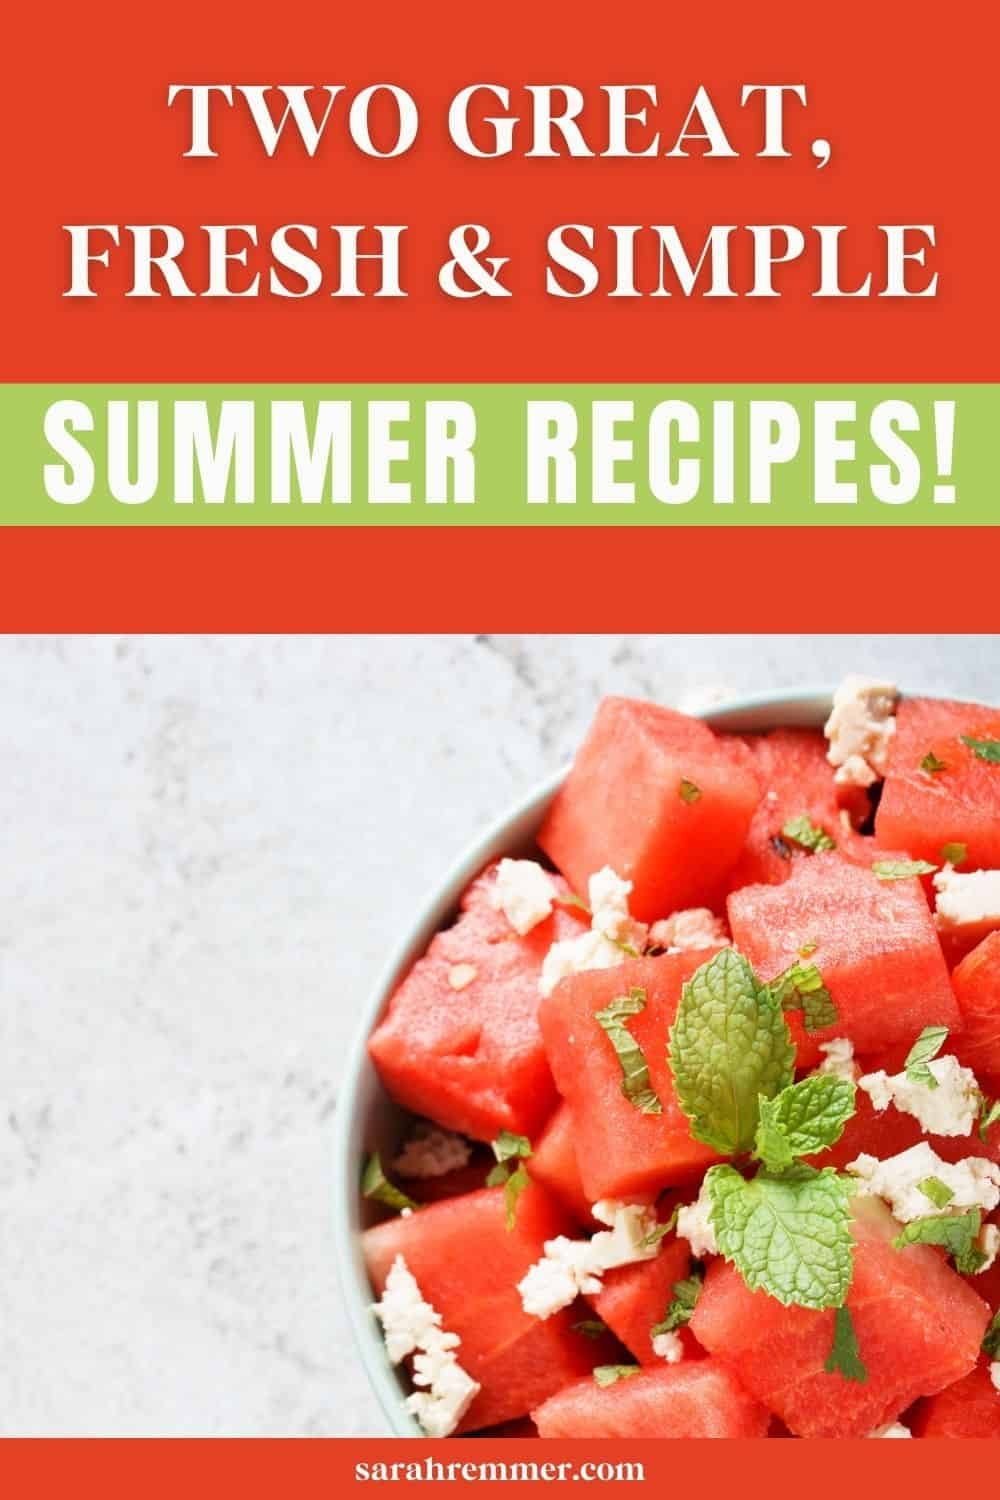 Looking for some simple summer recipes? I've got you covered with my curry chicken sandwiches and fresh watermelon, mint and feta salad! Both are perfect for summer barbeques or quick and easy lunches.